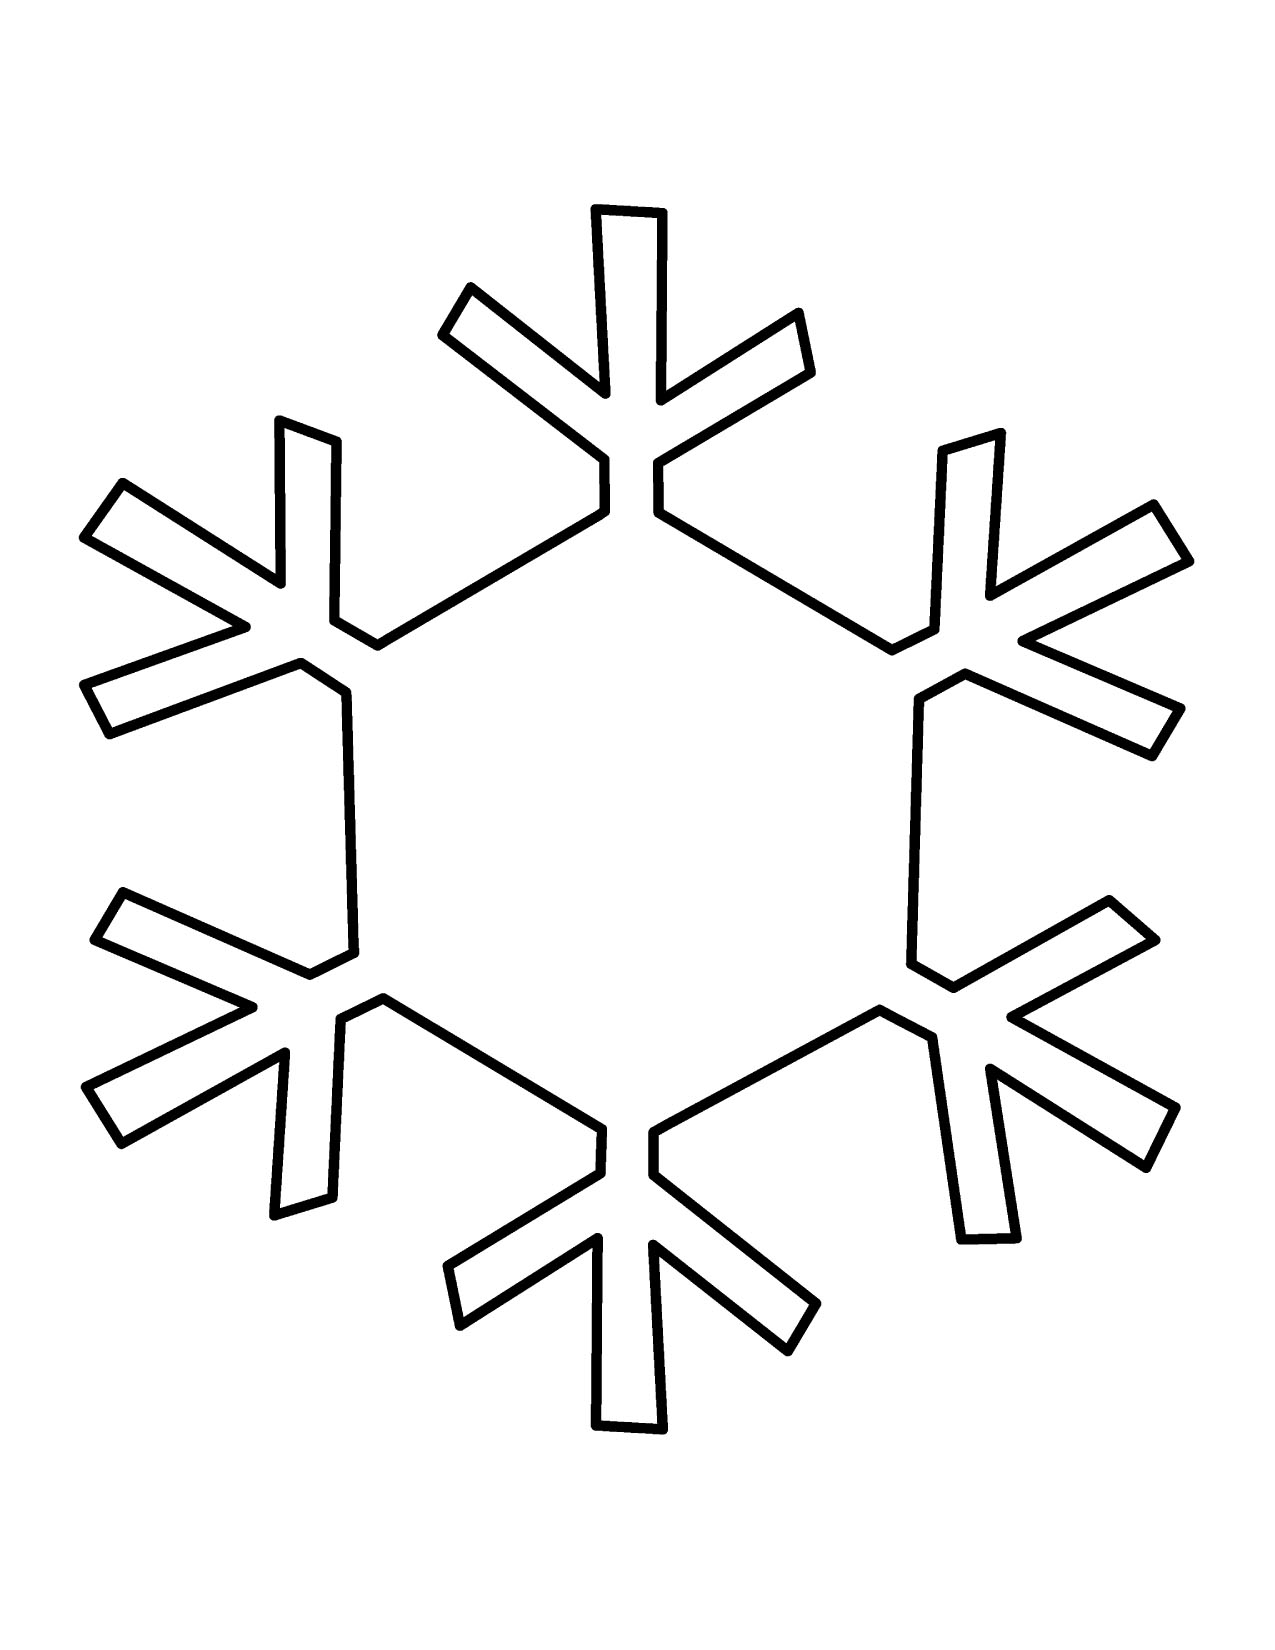 Simple snowflake clipart free clipart images.